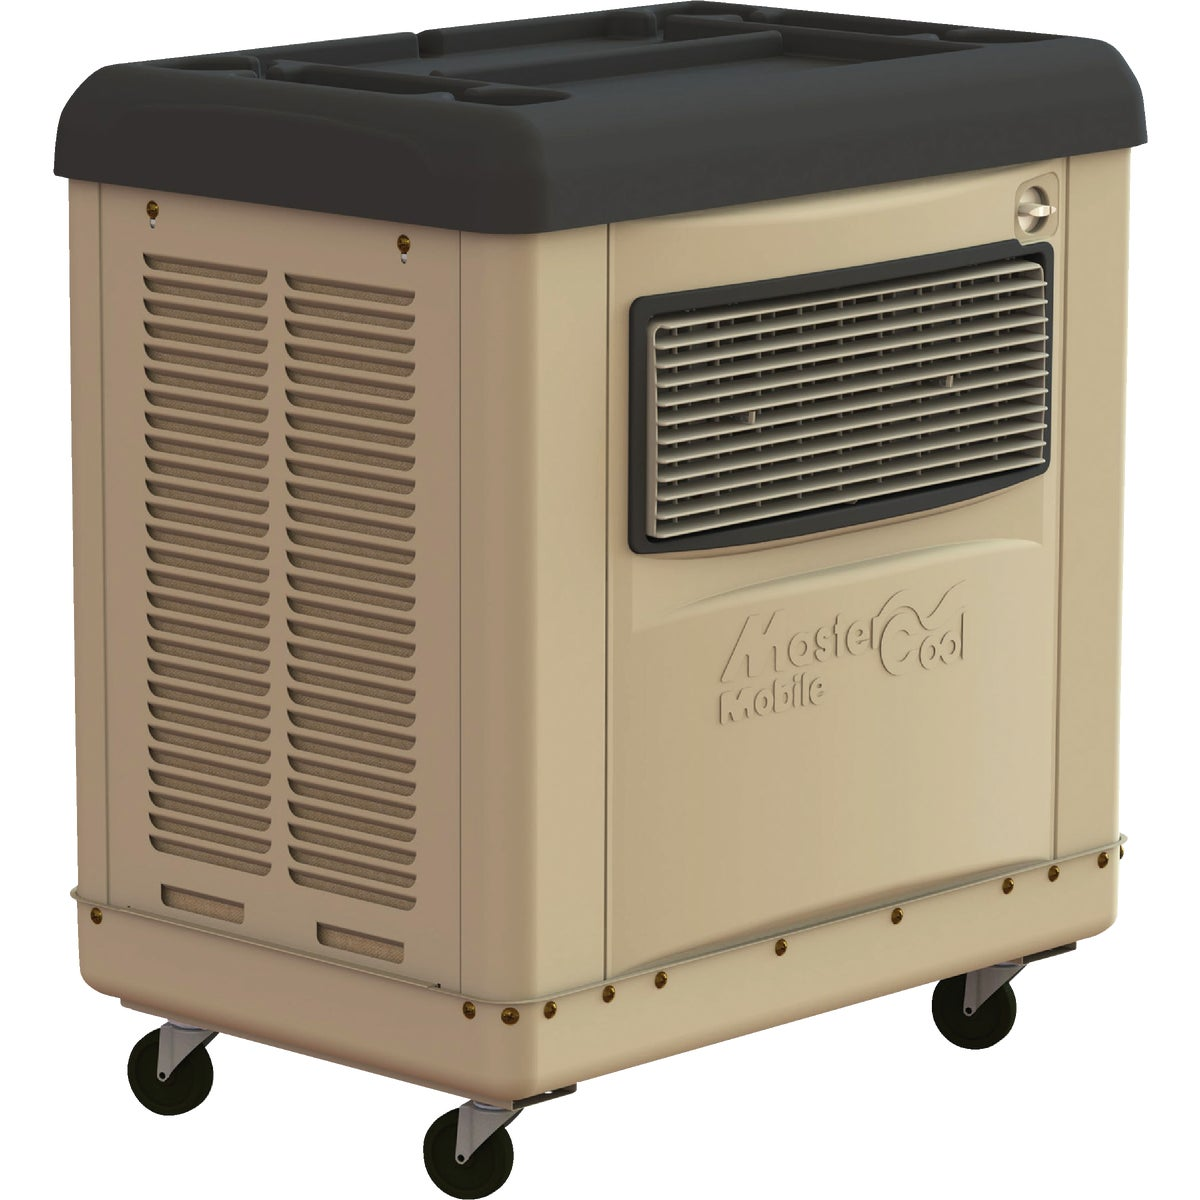 PORTABLE EVAP COOLER - MMBT12 by Champion Cooler Corp